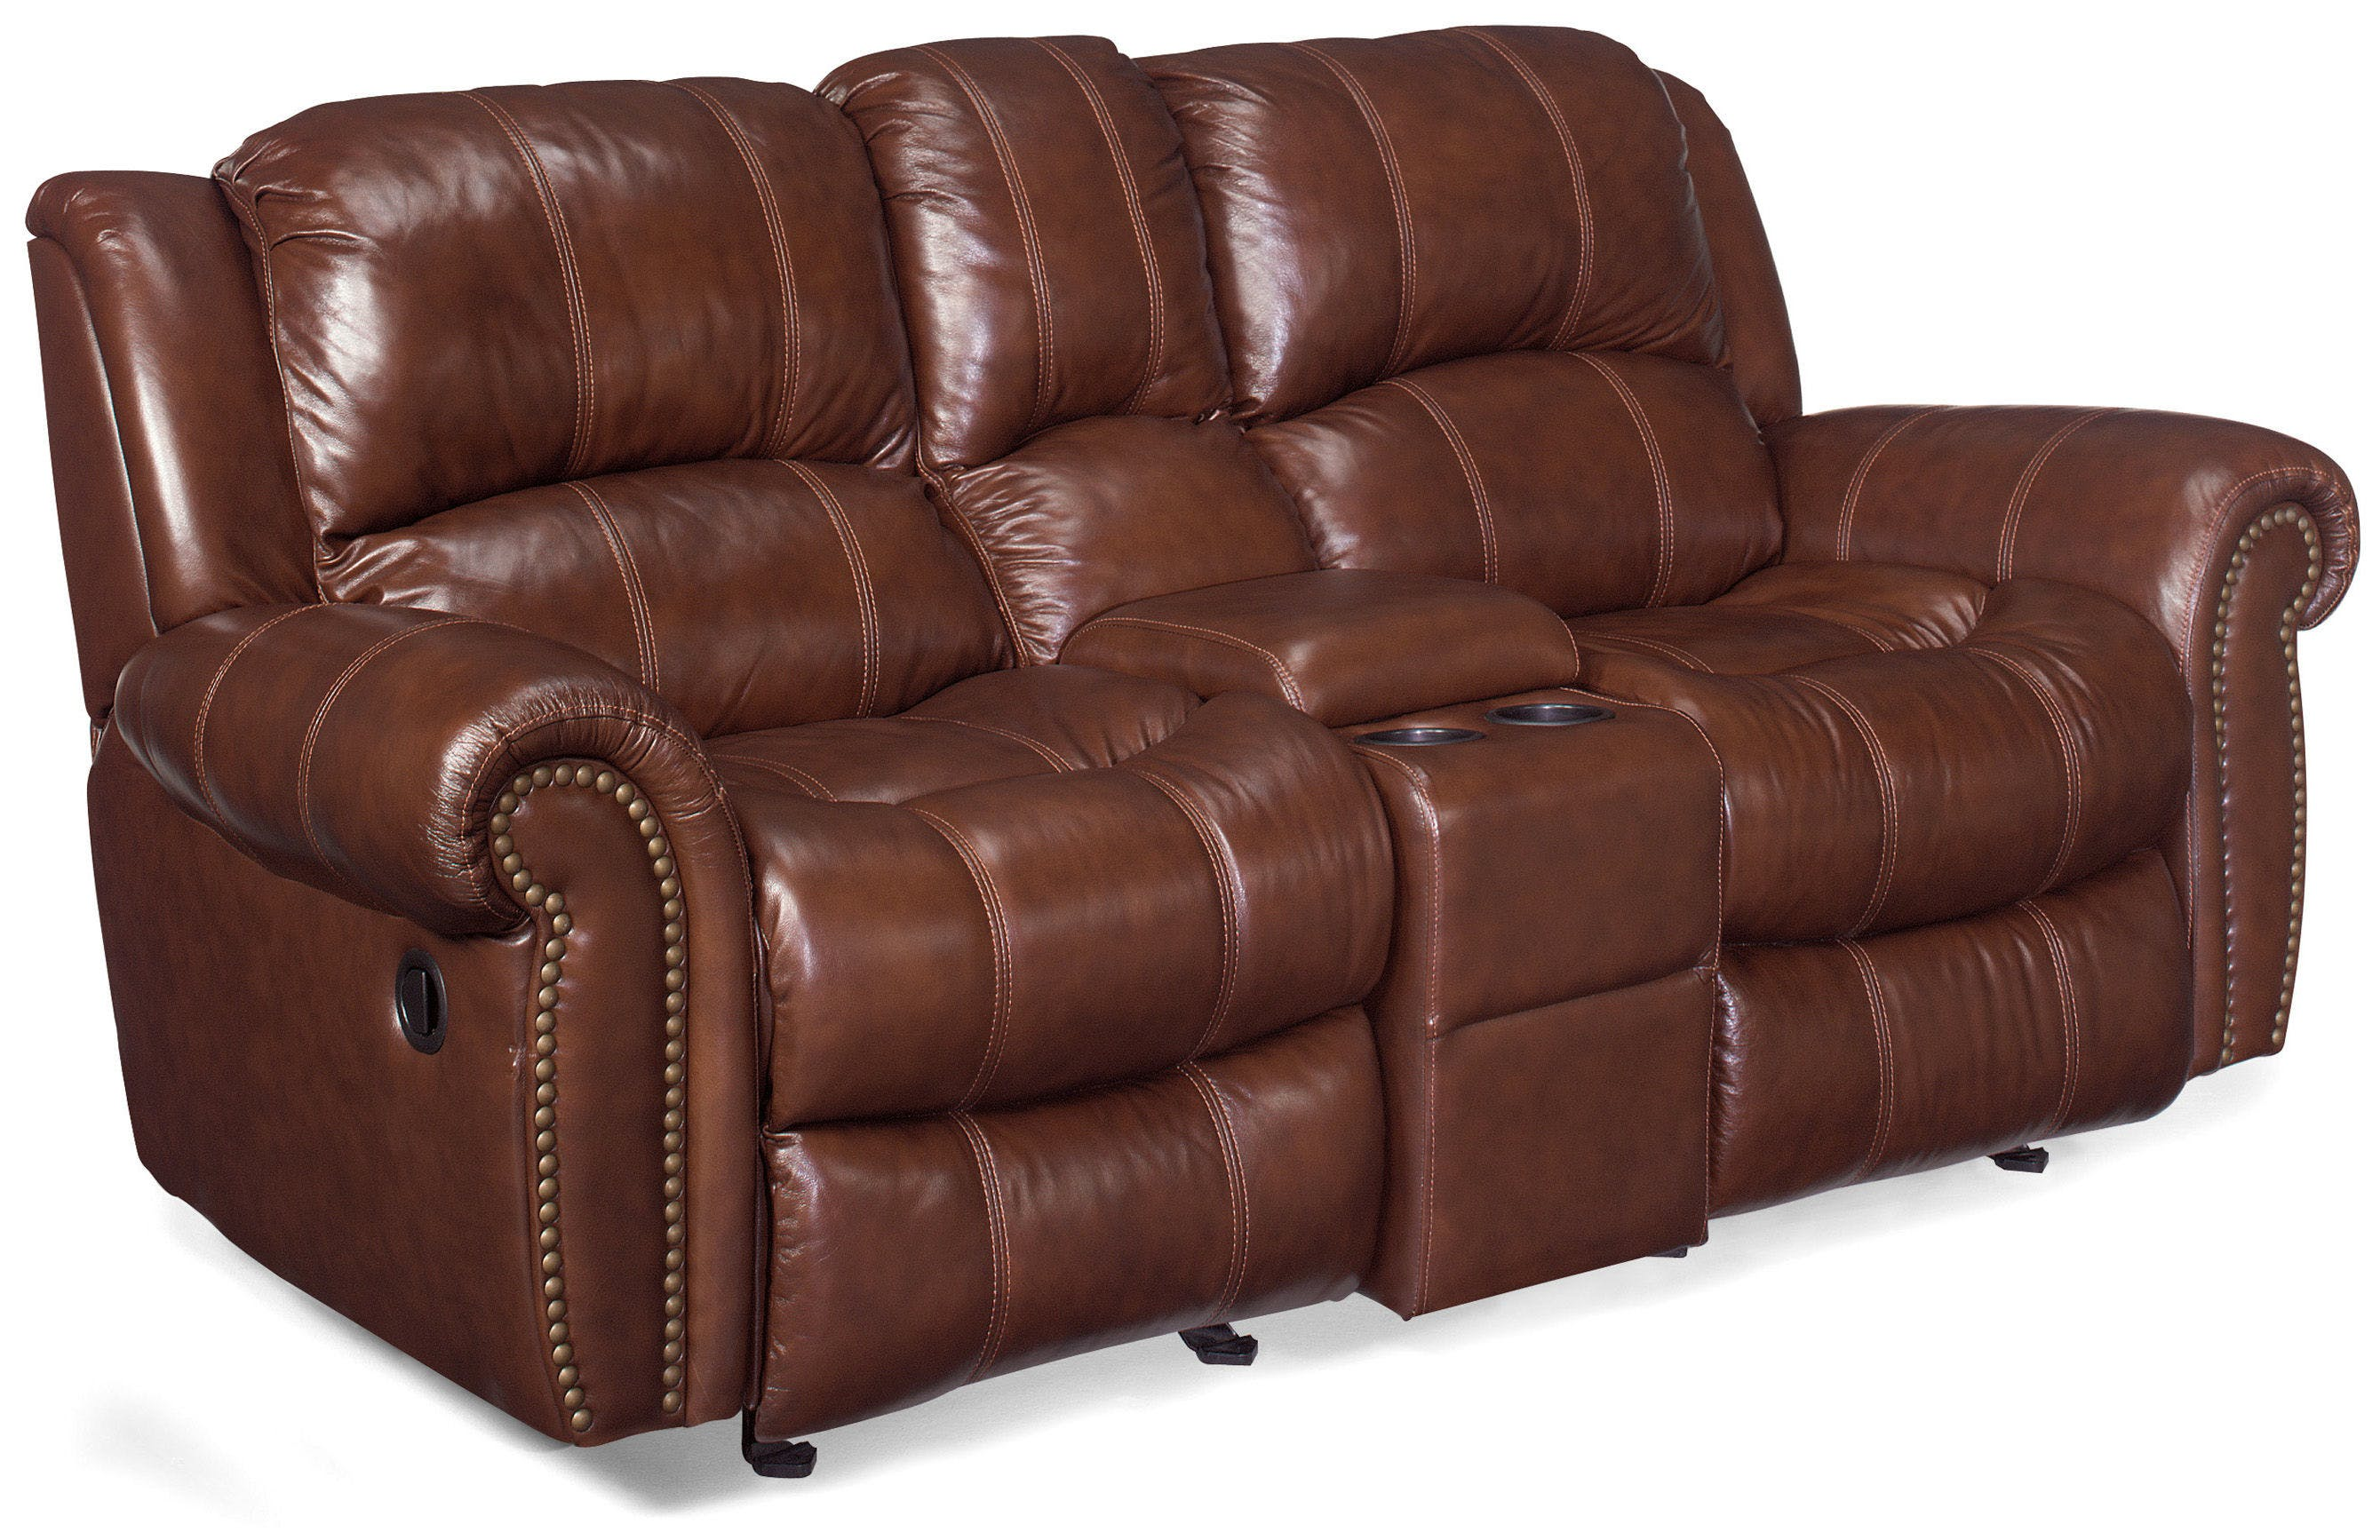 Glider Recliner | Rocker Recliners on Sale | Best Glider Recliner